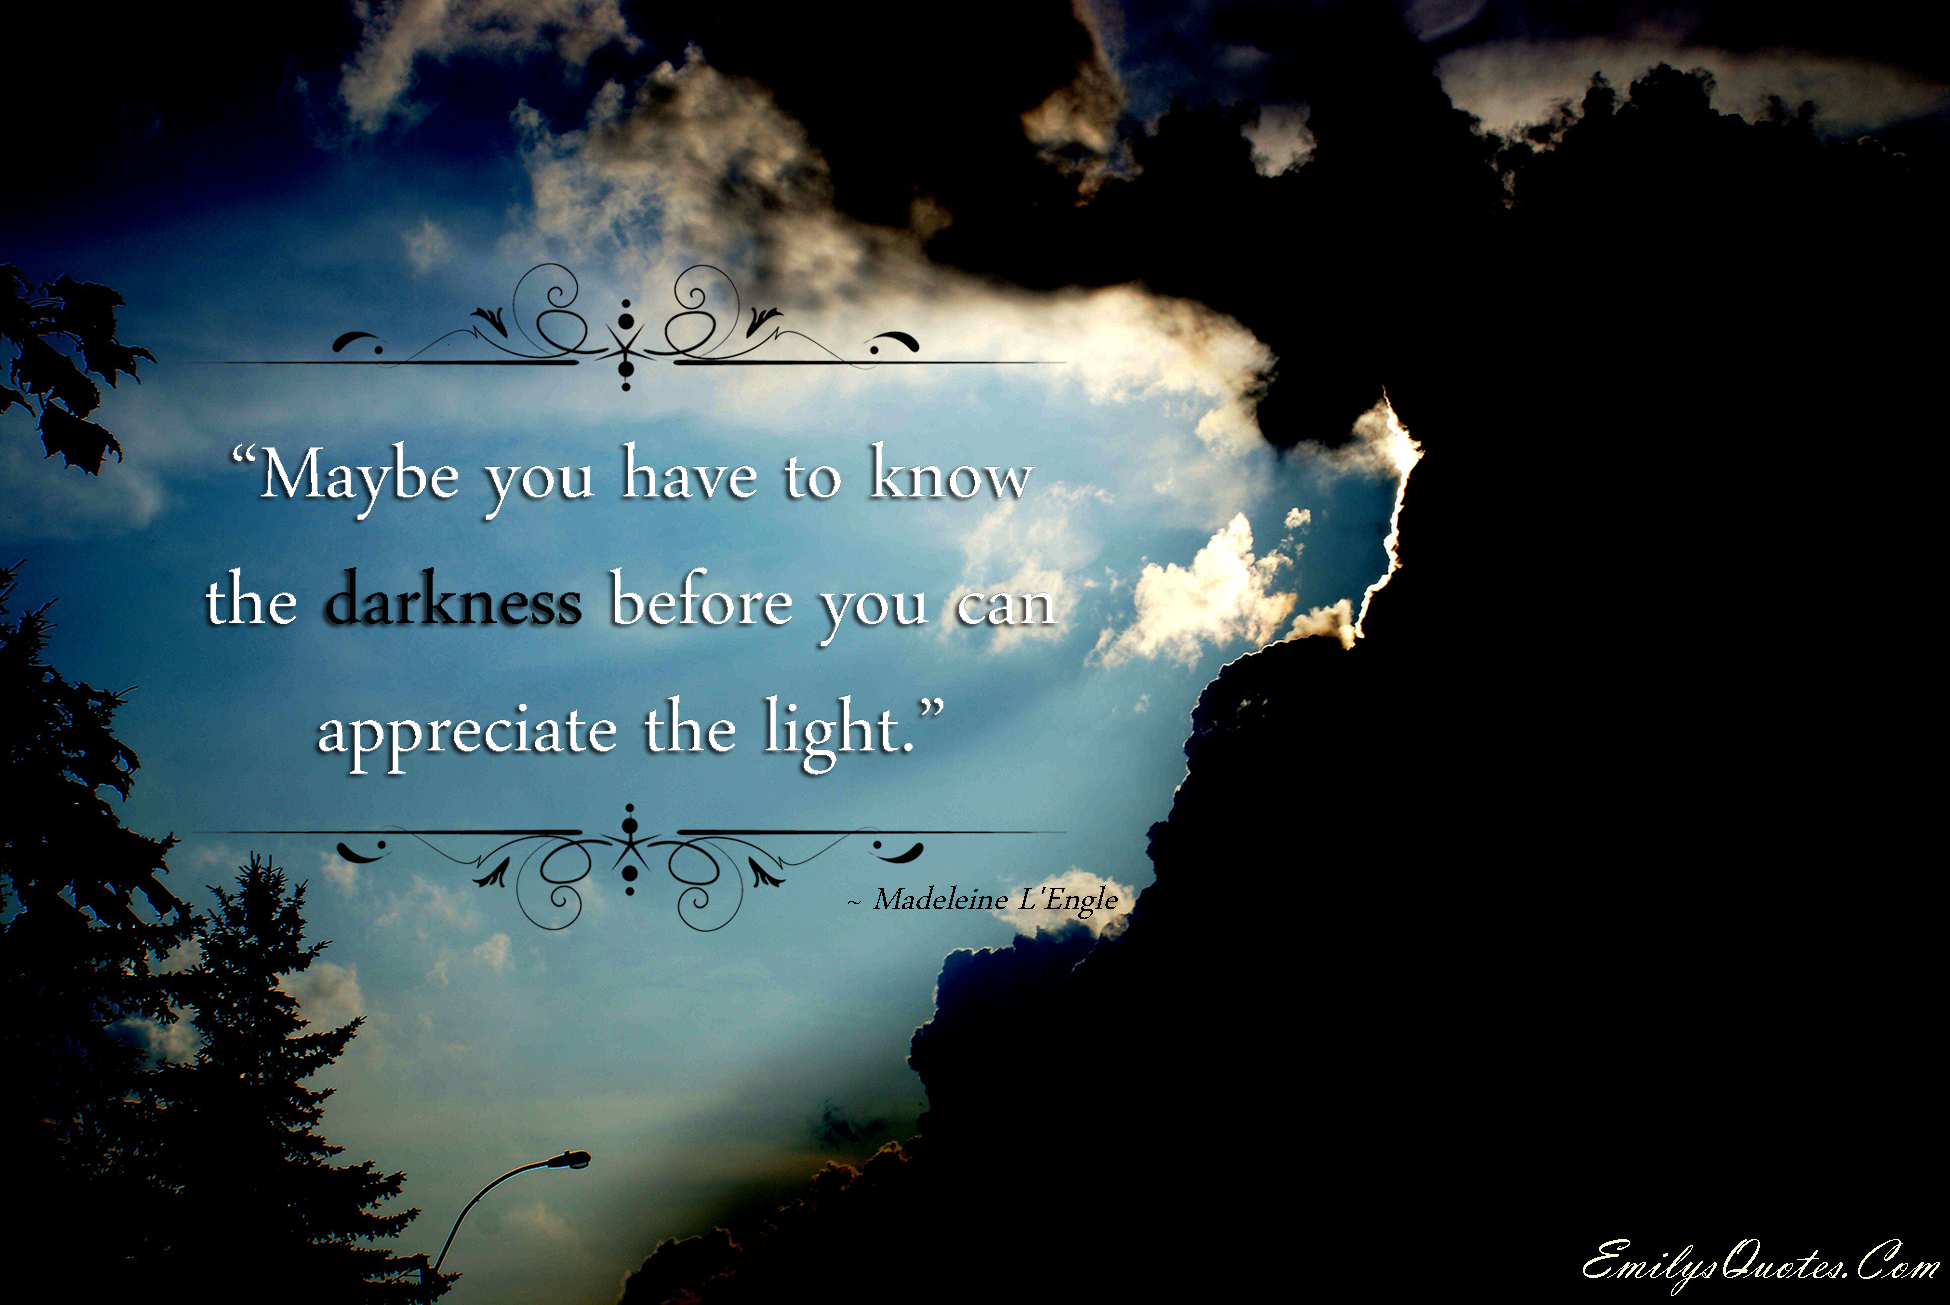 Light And Dark Quotes Maybe You Have To Know The Darkness Before You Can Appreciate The